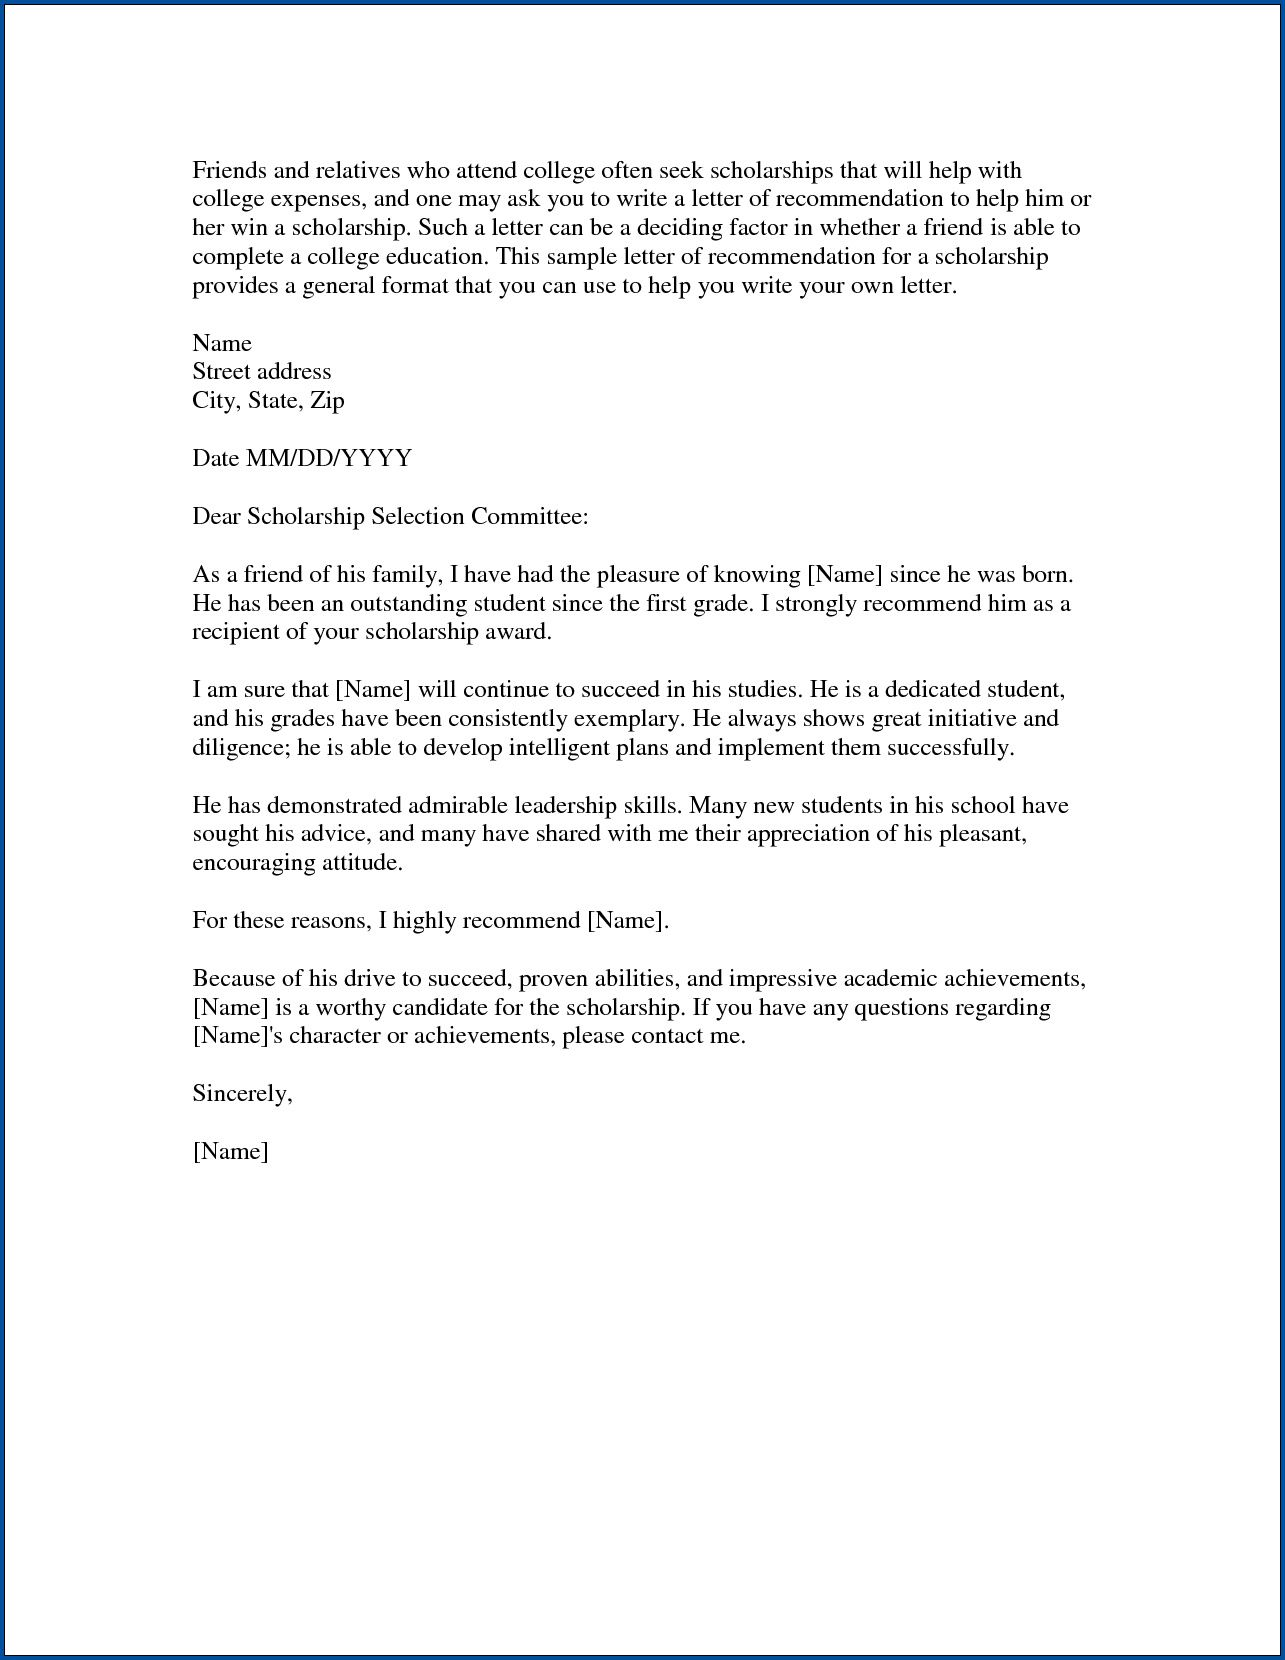 Example Of Recommendation Letter For Scholarship from www.addictionary.org